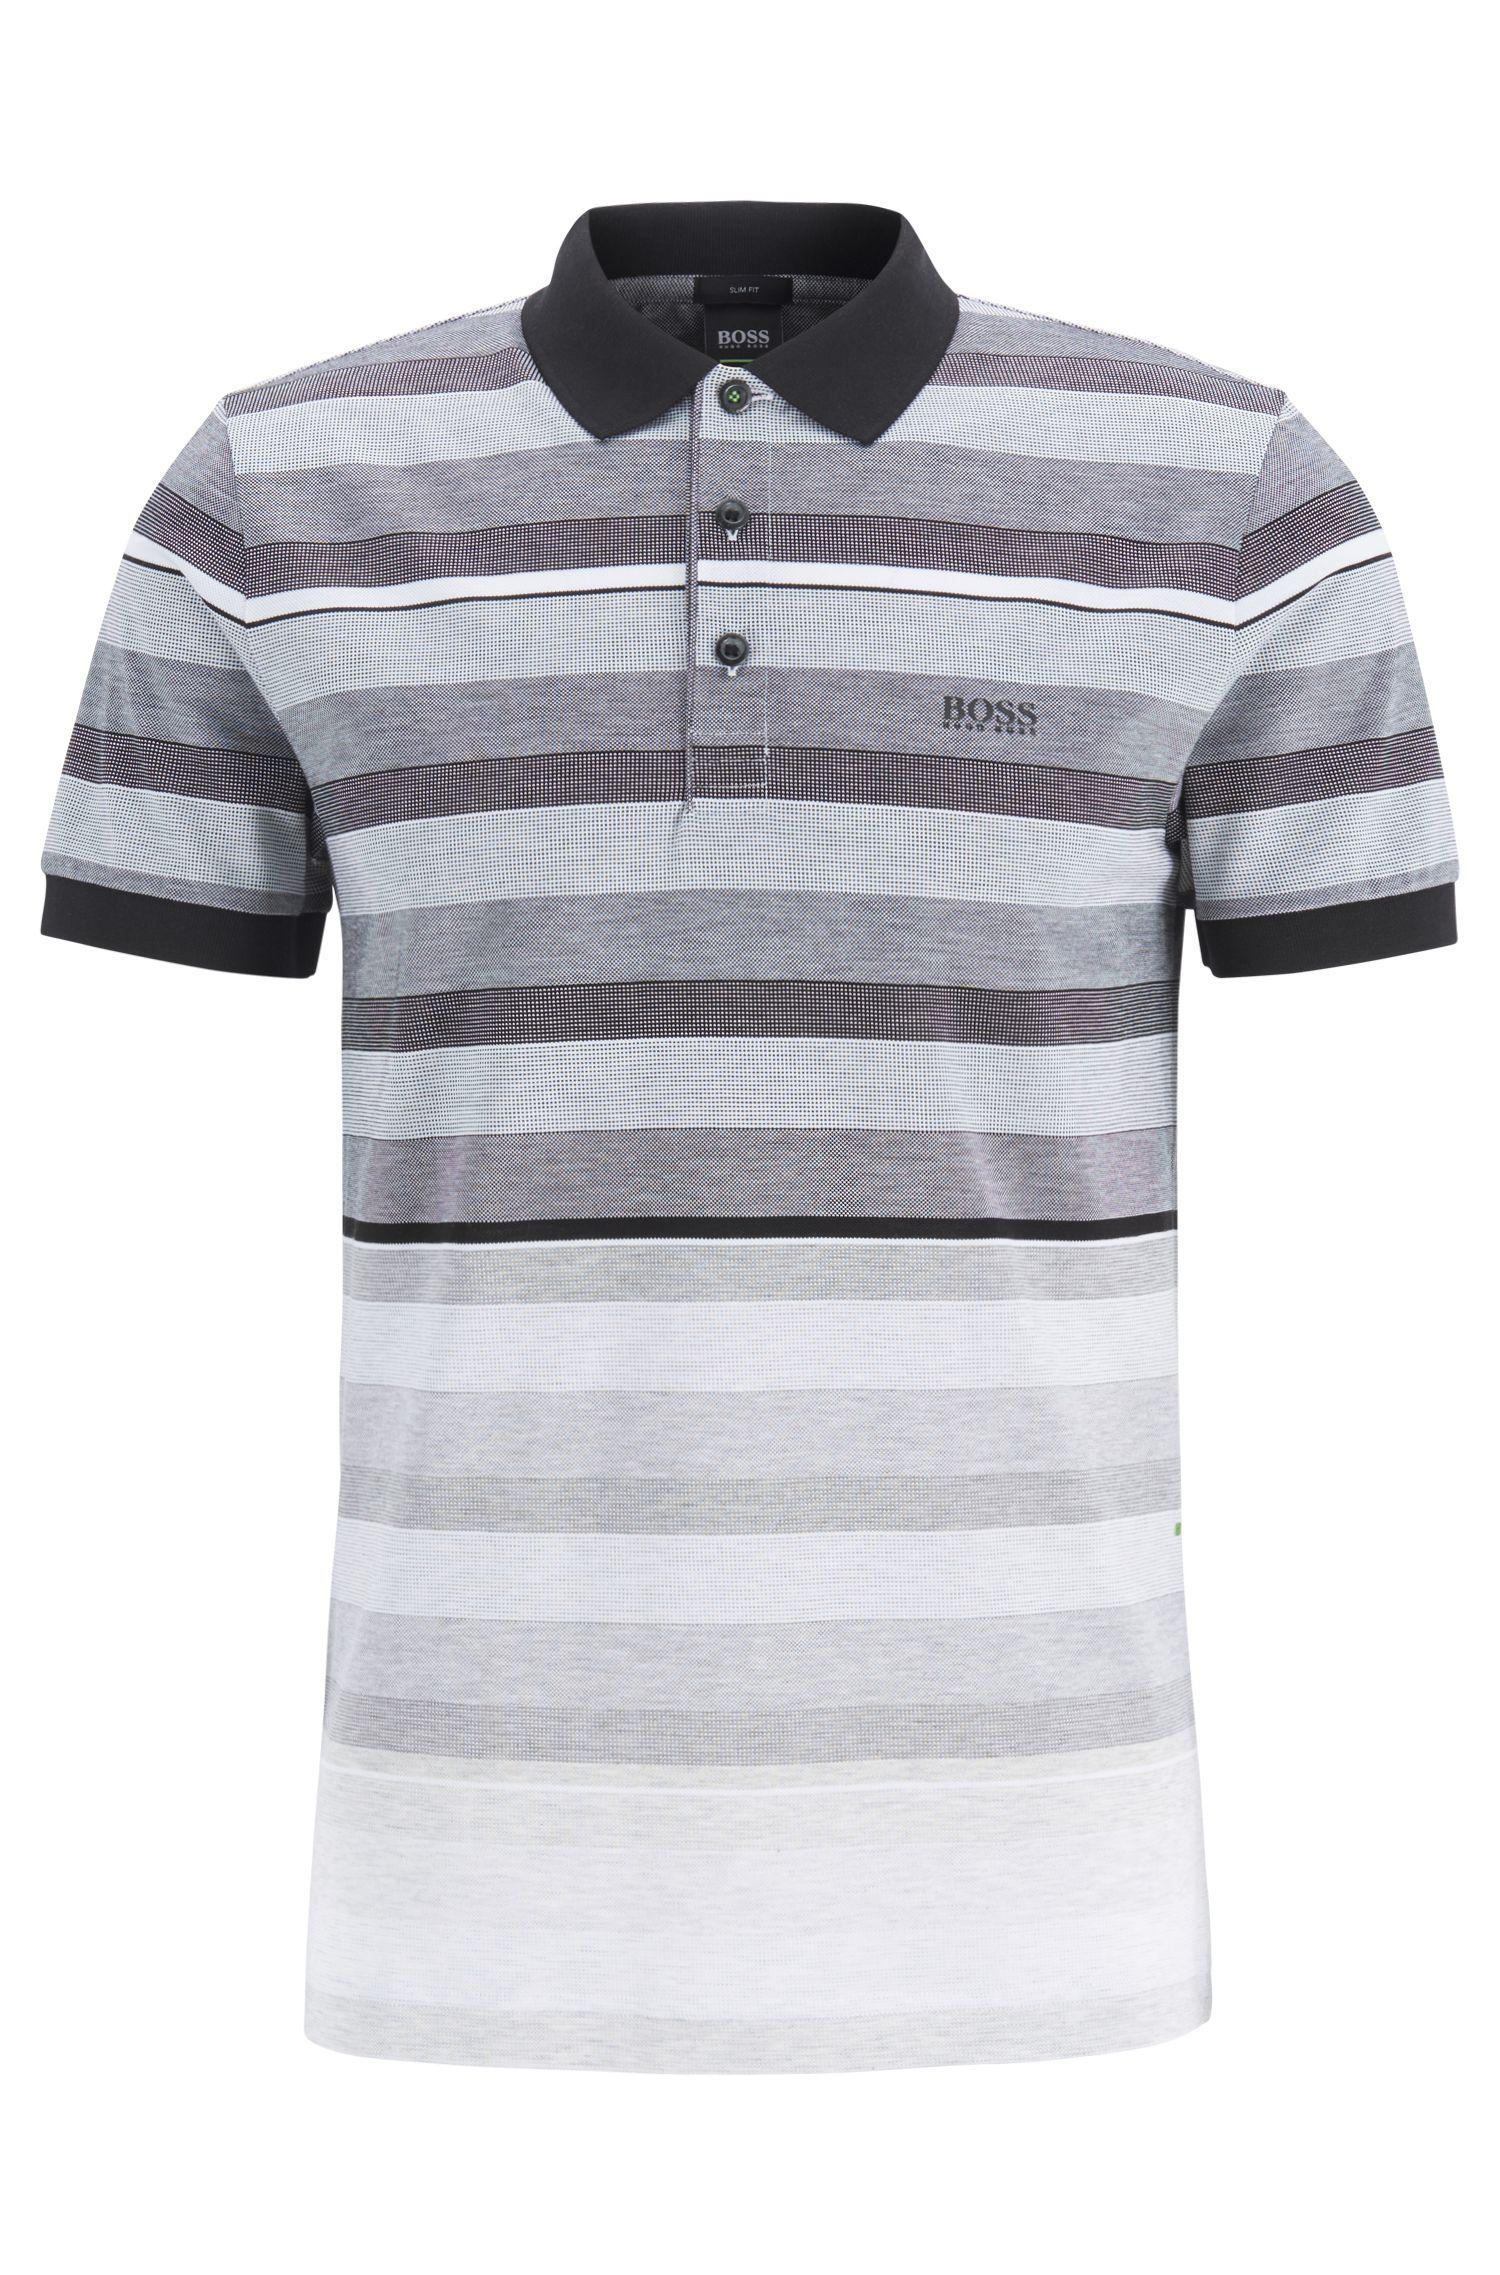 668f3a1c BOSS - Gray Slim-fit Polo Shirt In Striped Cotton Piqué for Men - Lyst.  View fullscreen